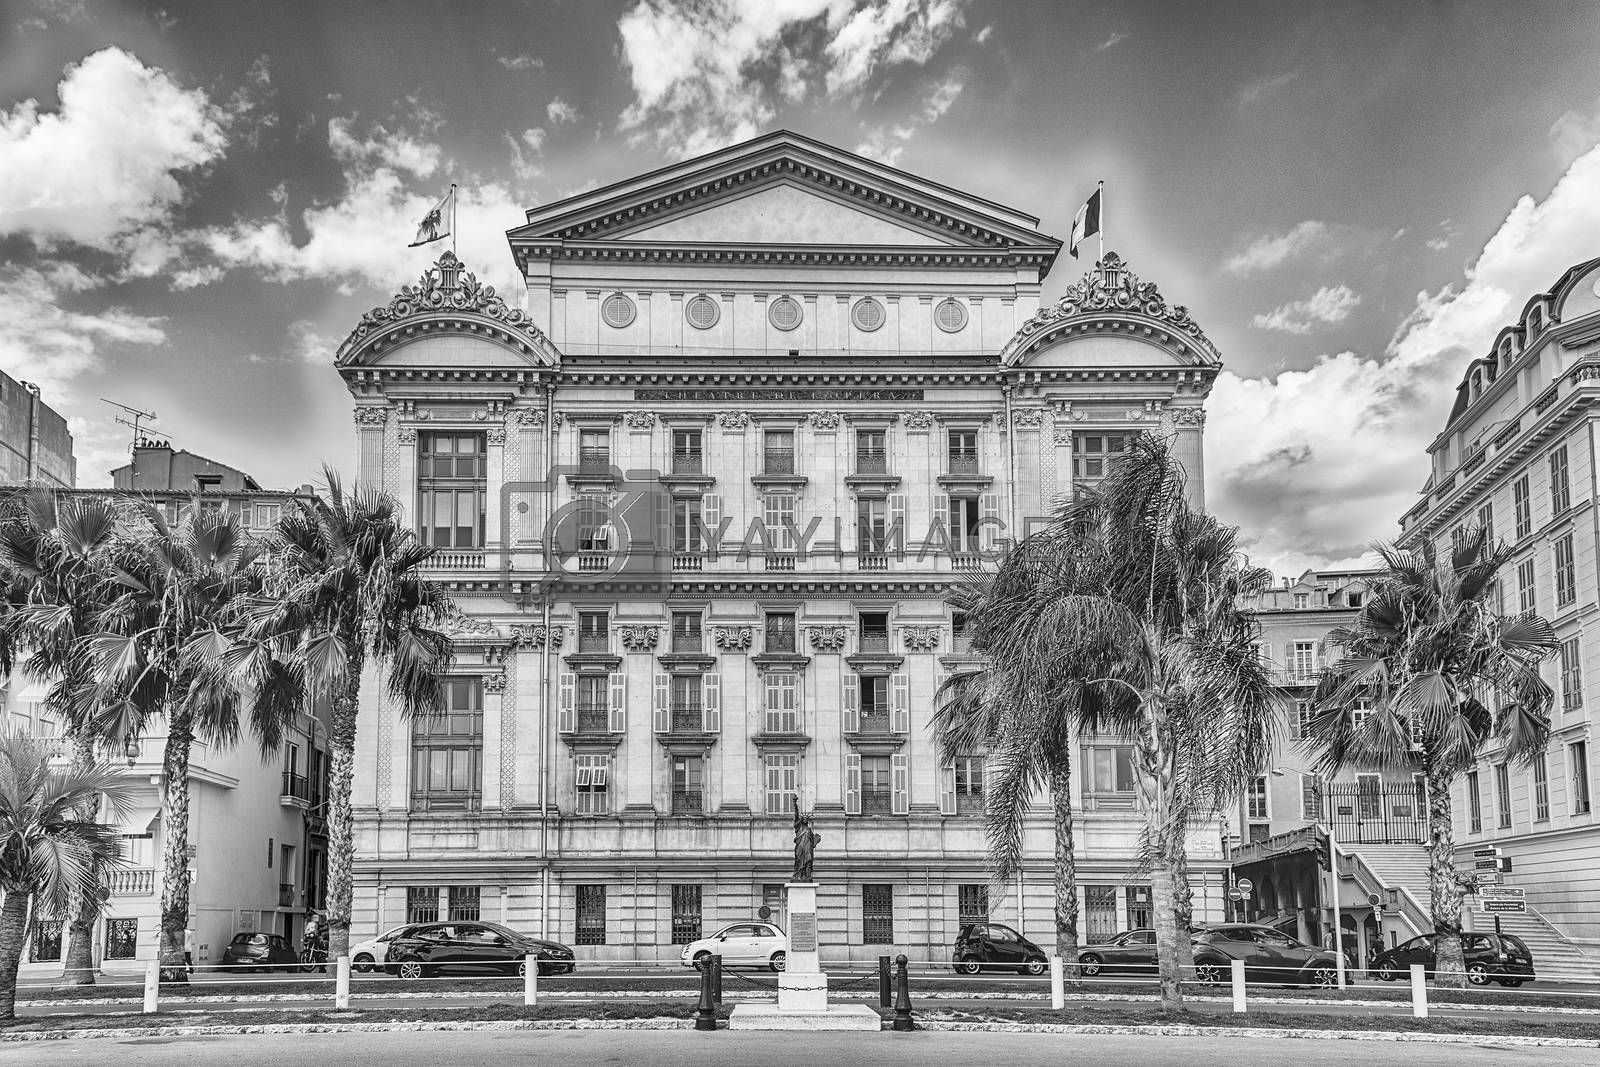 Southern facade of the Opera House, iconic theatre and major landmark on the Promenade des Anglais, Nice, Cote d'Azur, France